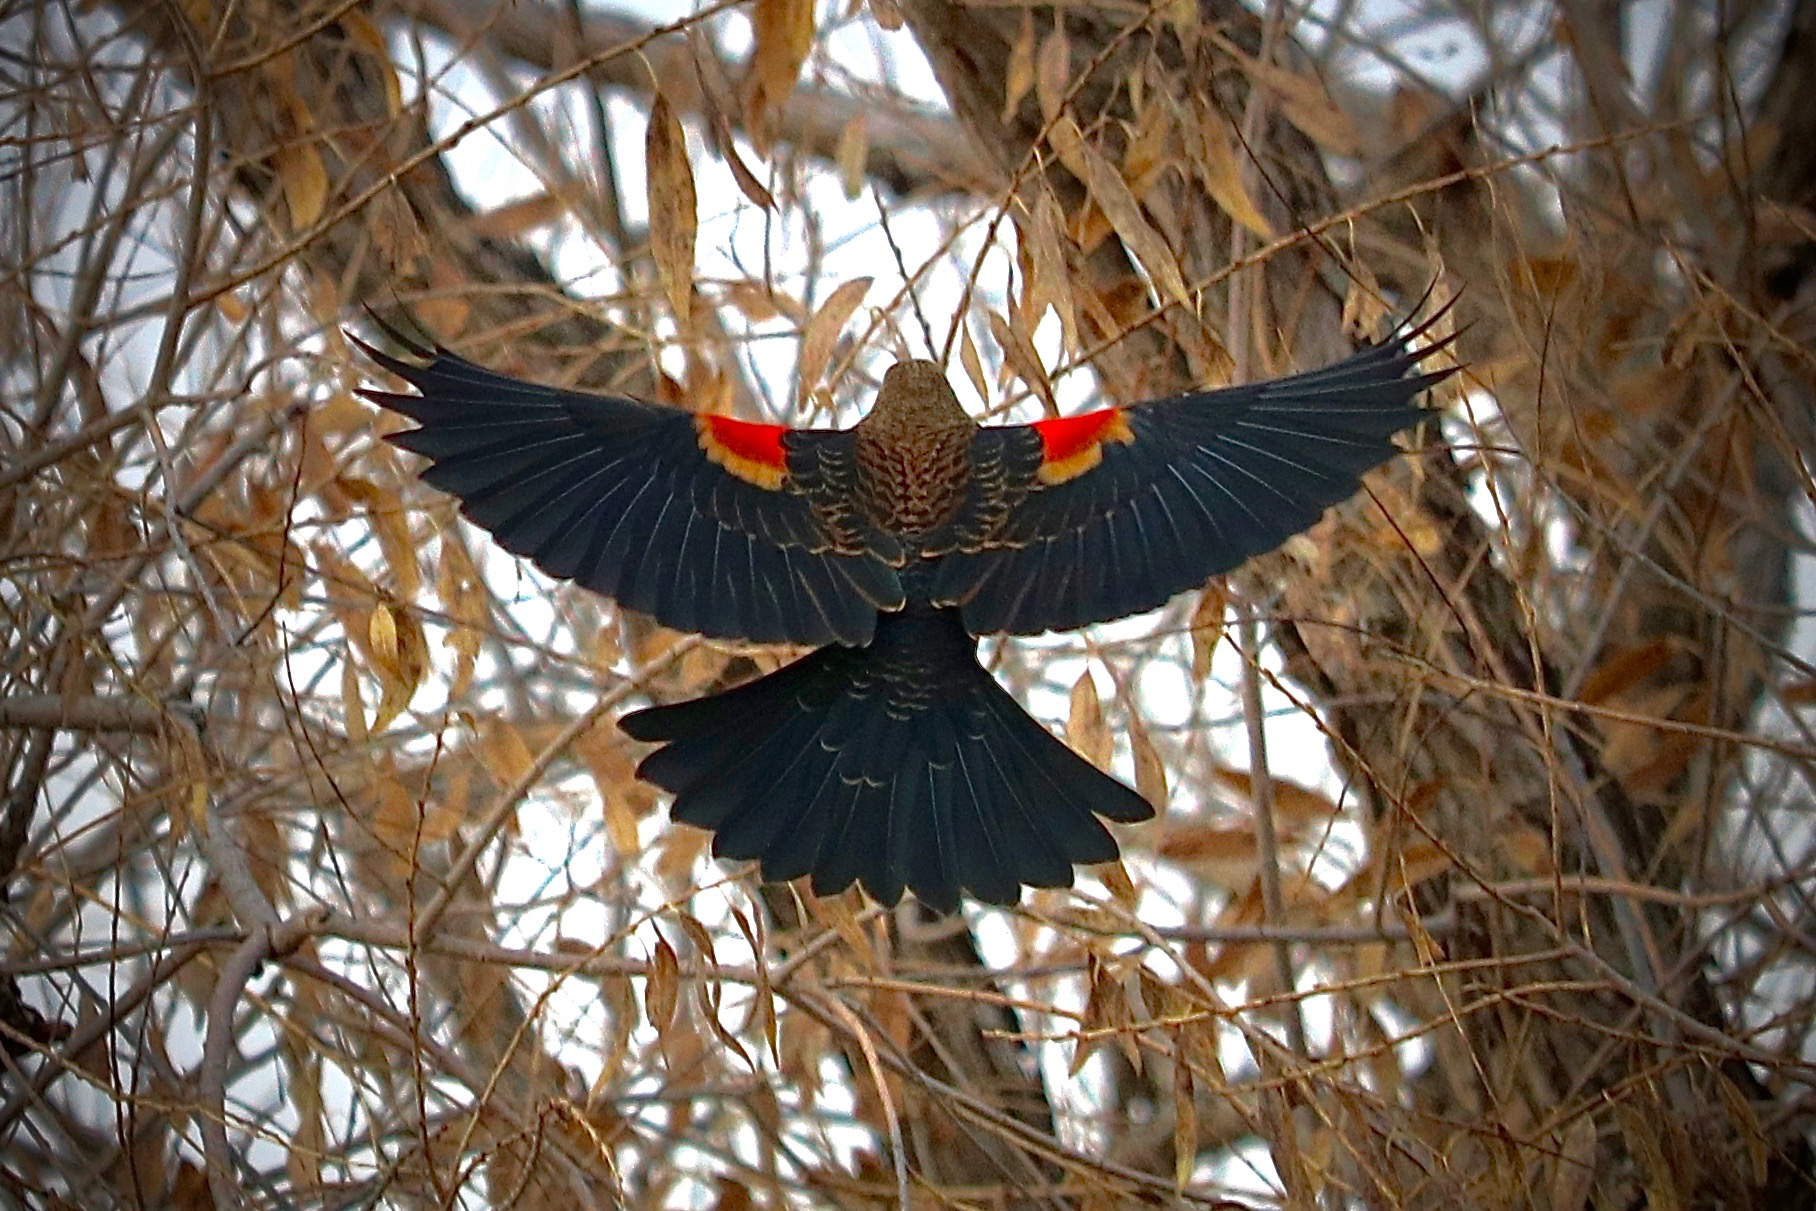 Red-winged blackbird. At home in Colorado.